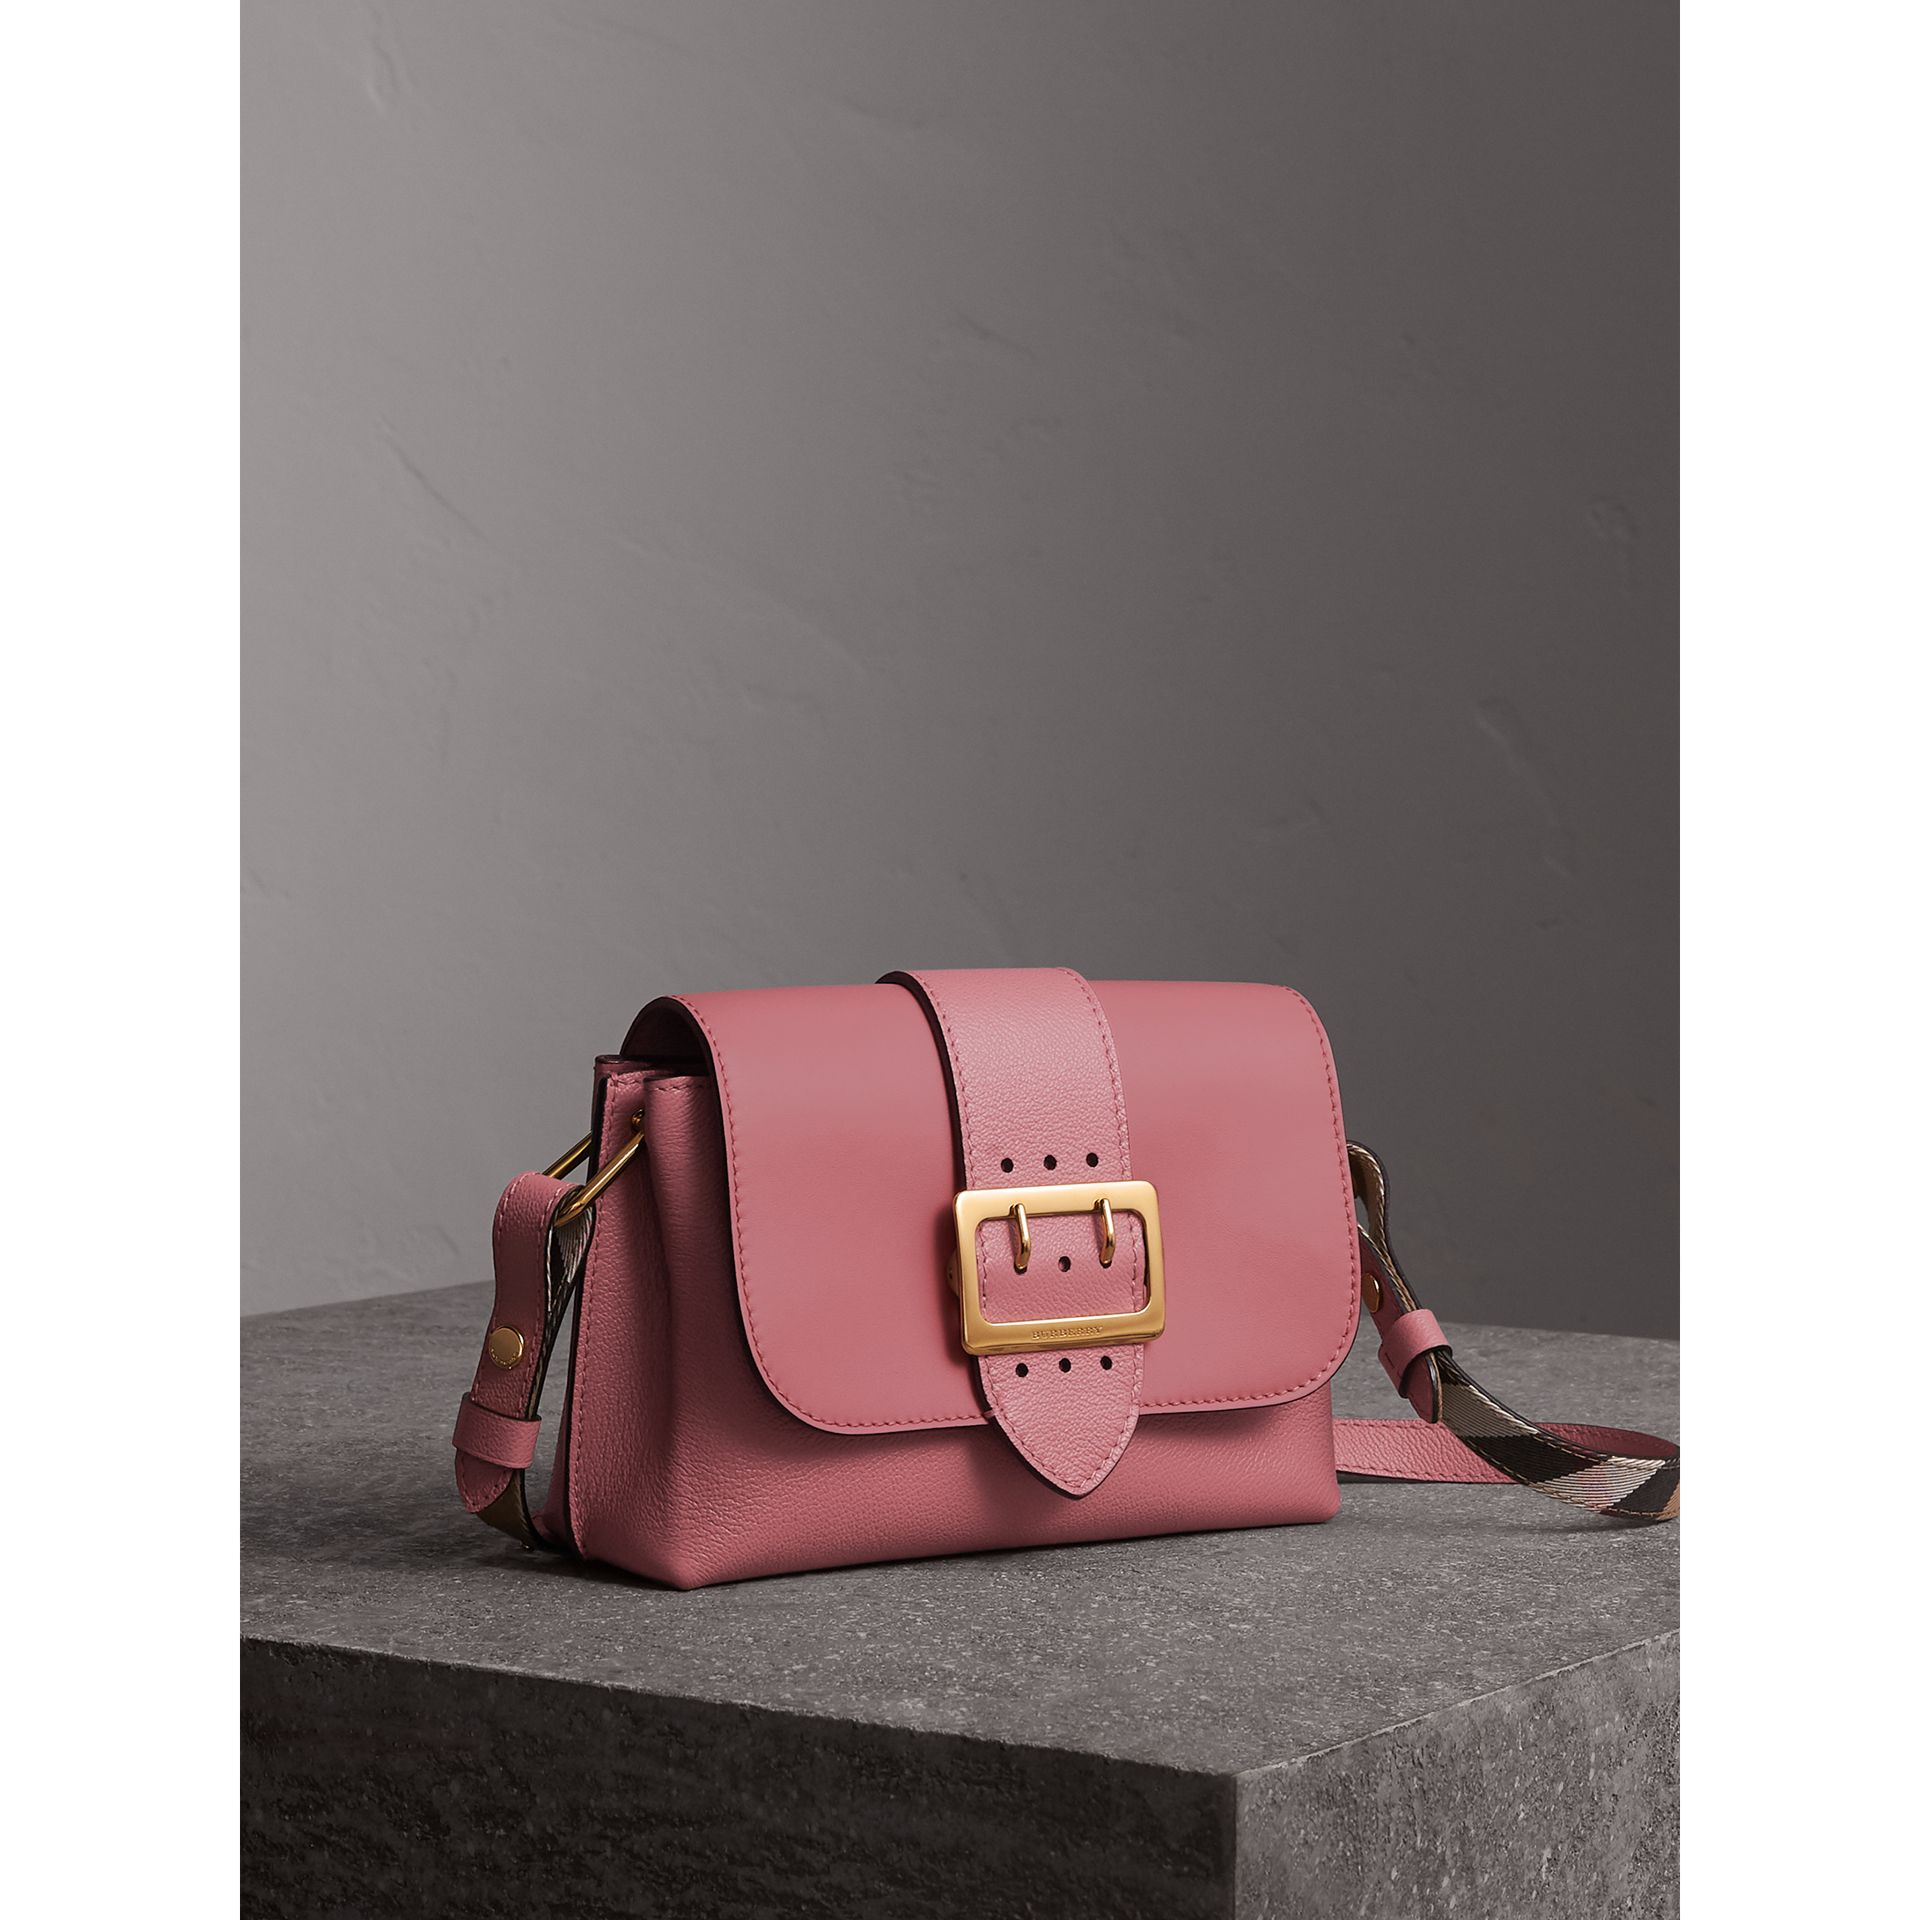 The Buckle Crossbody Bag in Leather in Dusty Pink - Women | Burberry - gallery image 7